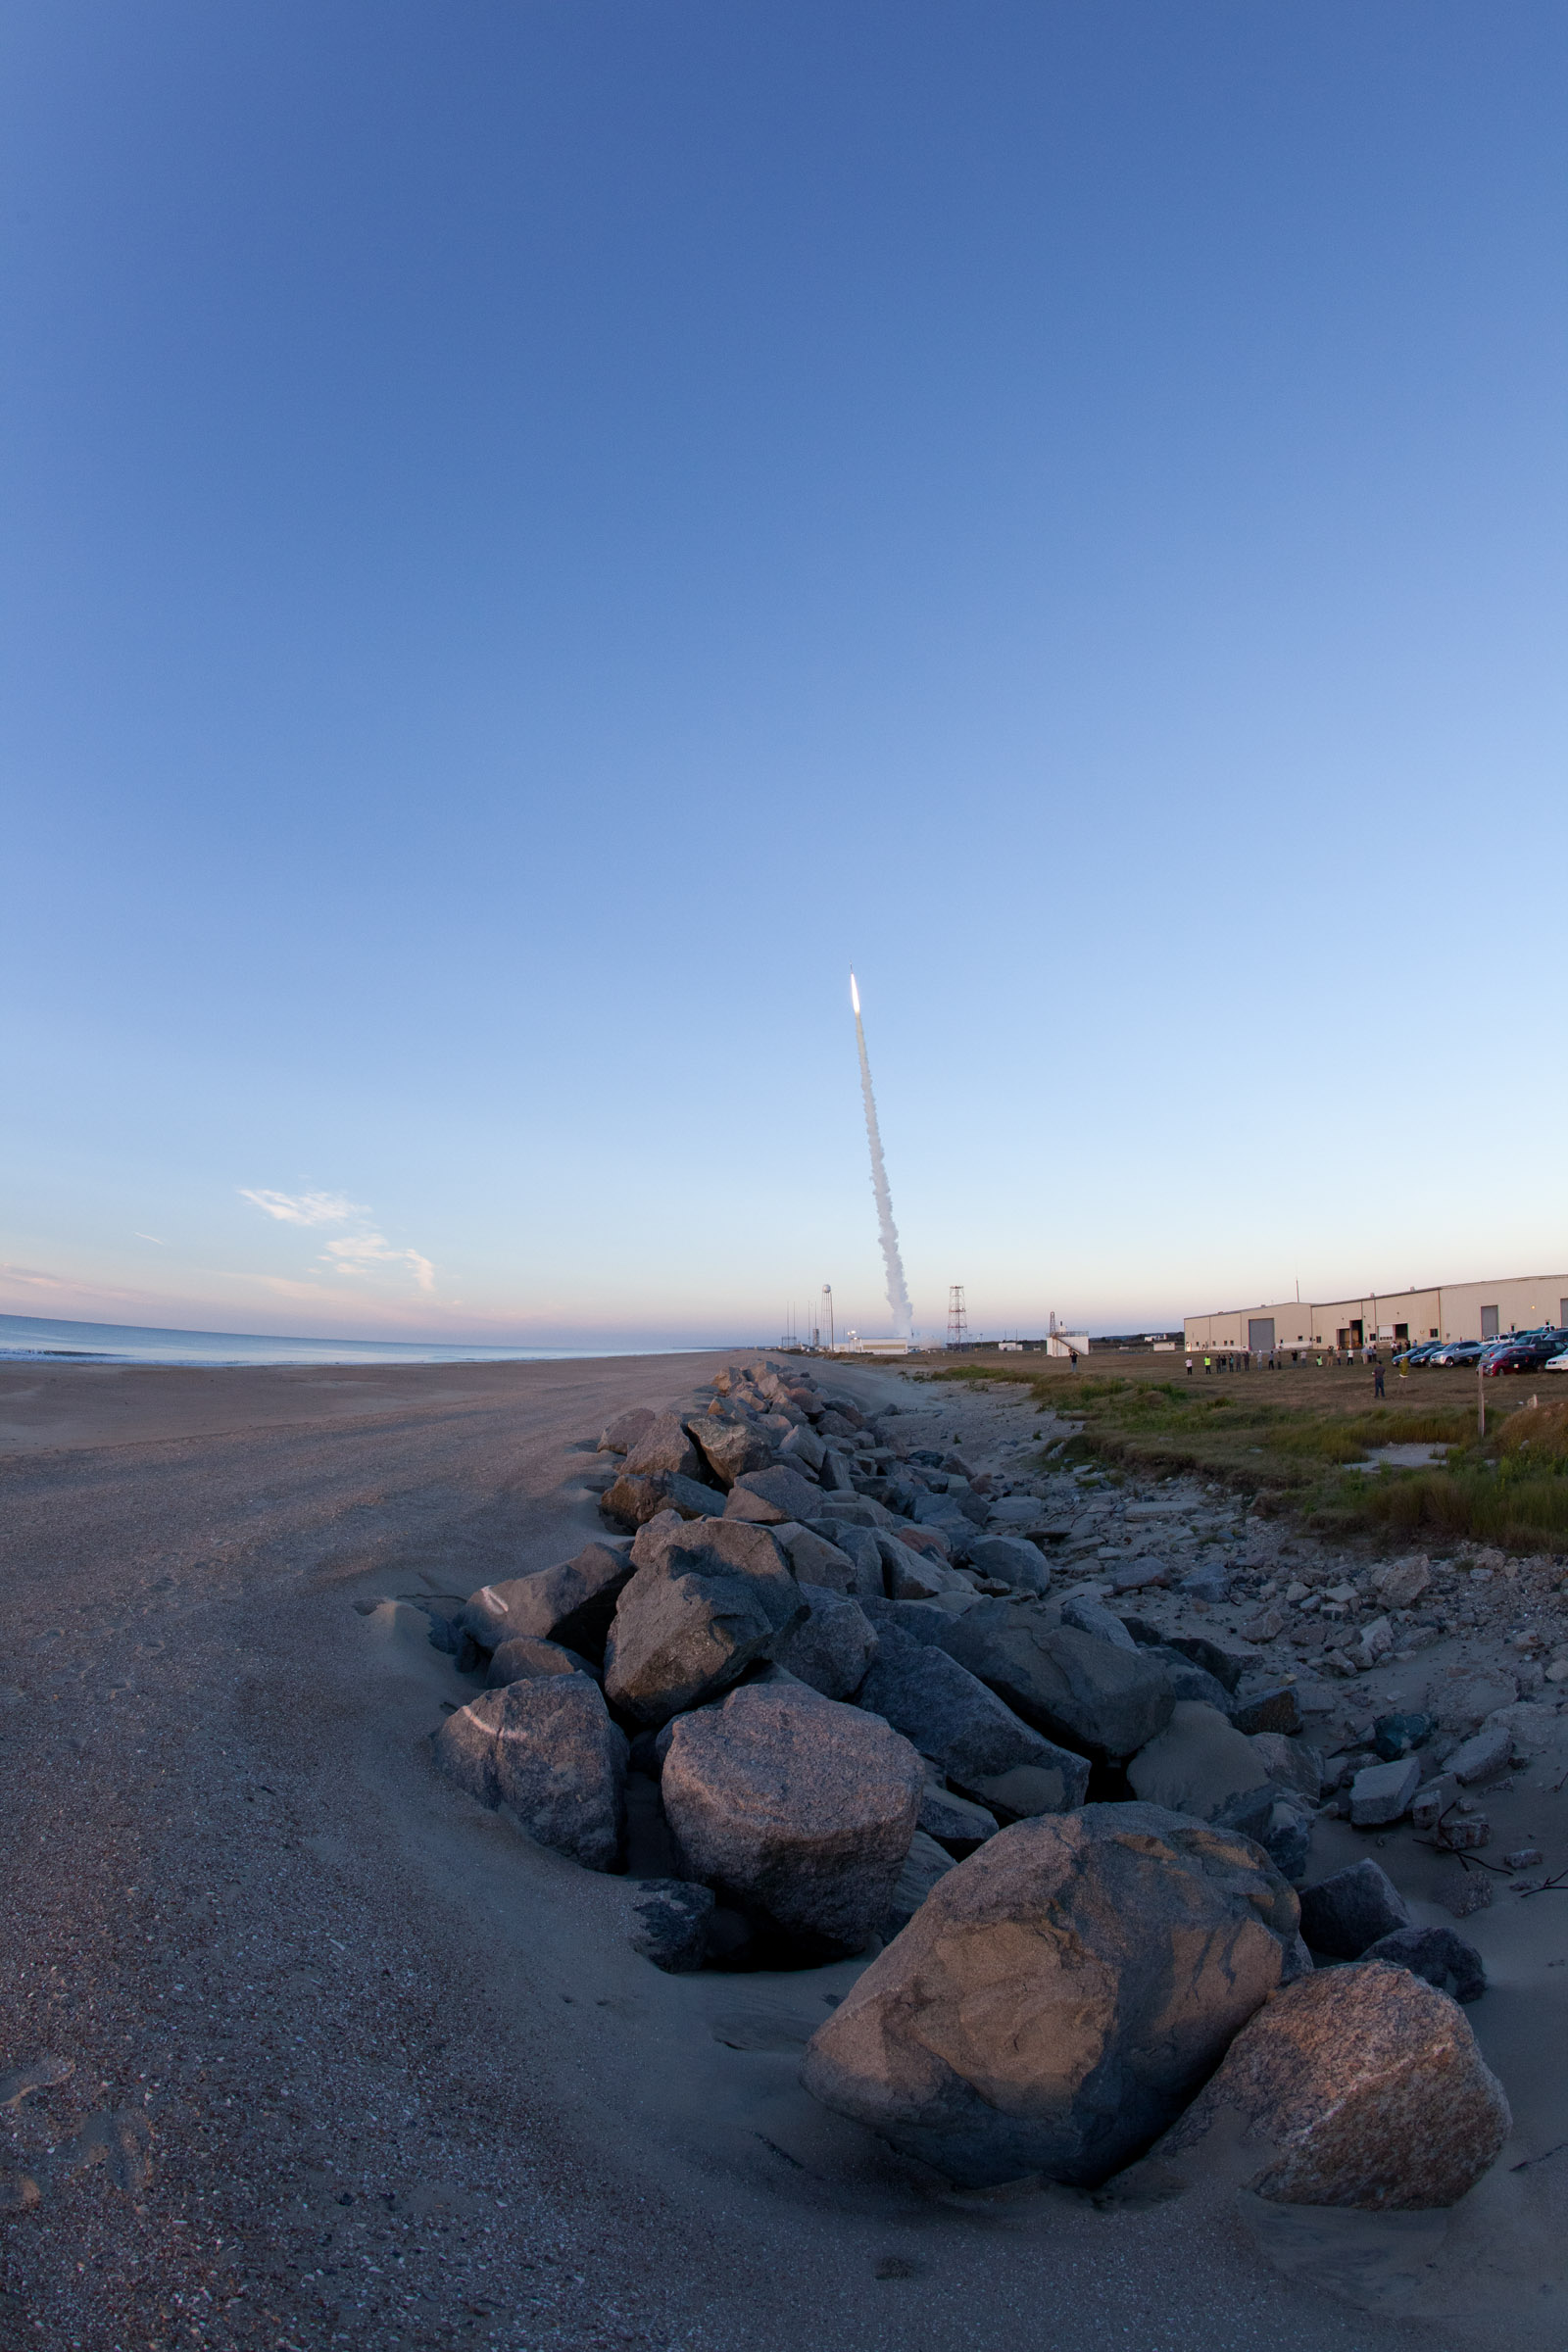 RockSatX launches from NASA's Wallops Flight Facility Sept. 21.